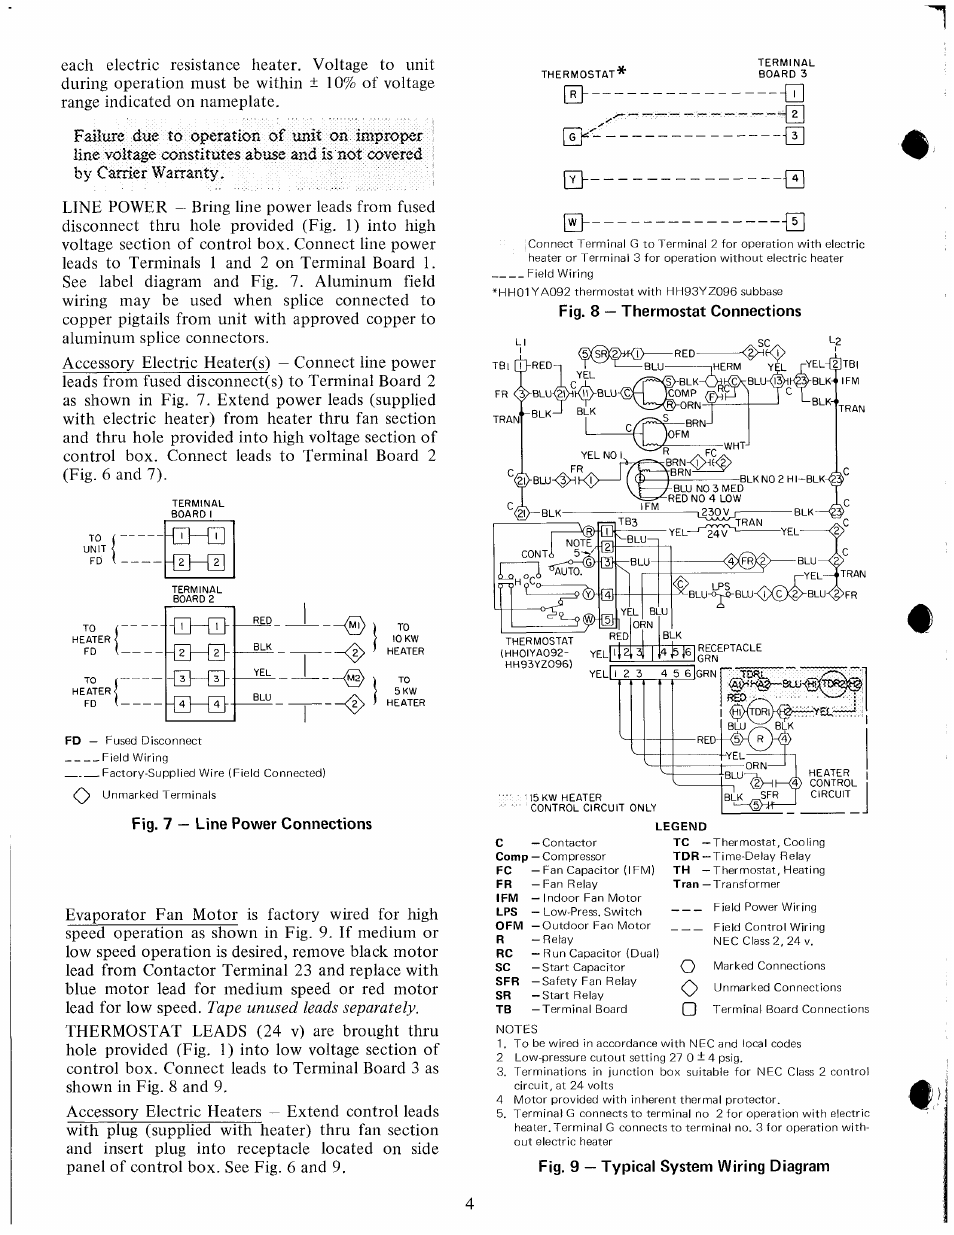 Fig. 7 — line power connections, Fig. 9 — typical system ... Kw Wiring Diagram on pa wiring diagram, ge wiring diagram, ac wiring diagram, gm wiring diagram, sd wiring diagram, mg wiring diagram, st wiring diagram, jp wiring diagram, tj wiring diagram, hp wiring diagram, ag wiring diagram, td wiring diagram, ml wiring diagram, cm wiring diagram, sh wiring diagram, dj wiring diagram, ae wiring diagram, cr wiring diagram, sg wiring diagram, tv wiring diagram,